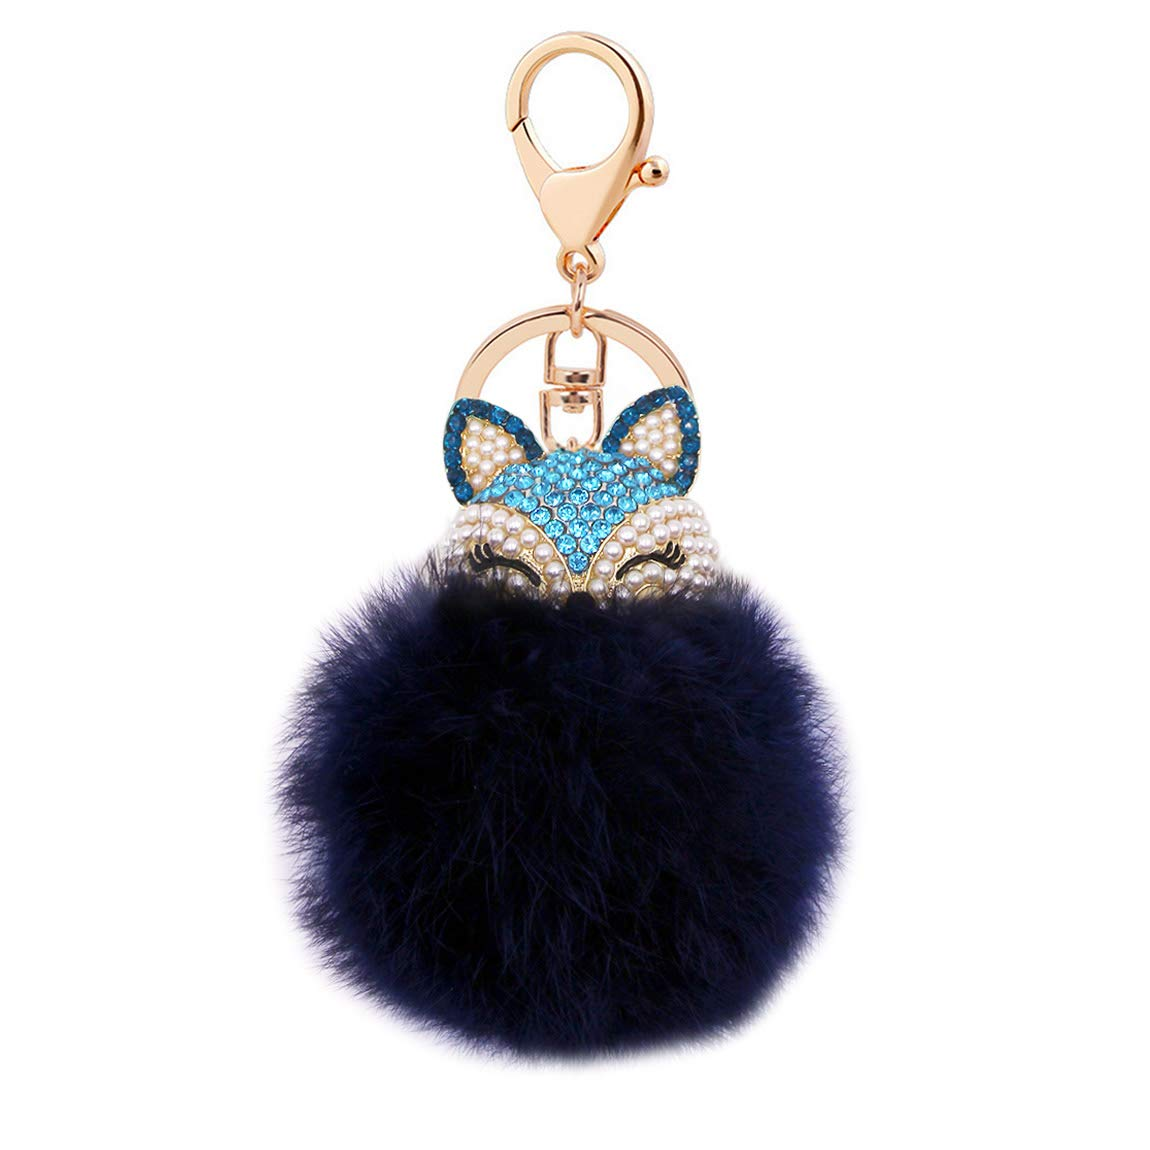 Cute Fox Diamond Keychain Soft Big Fluffy Ball Keyring Bag Decoration Creative Gift for Girls and Women(Blue)